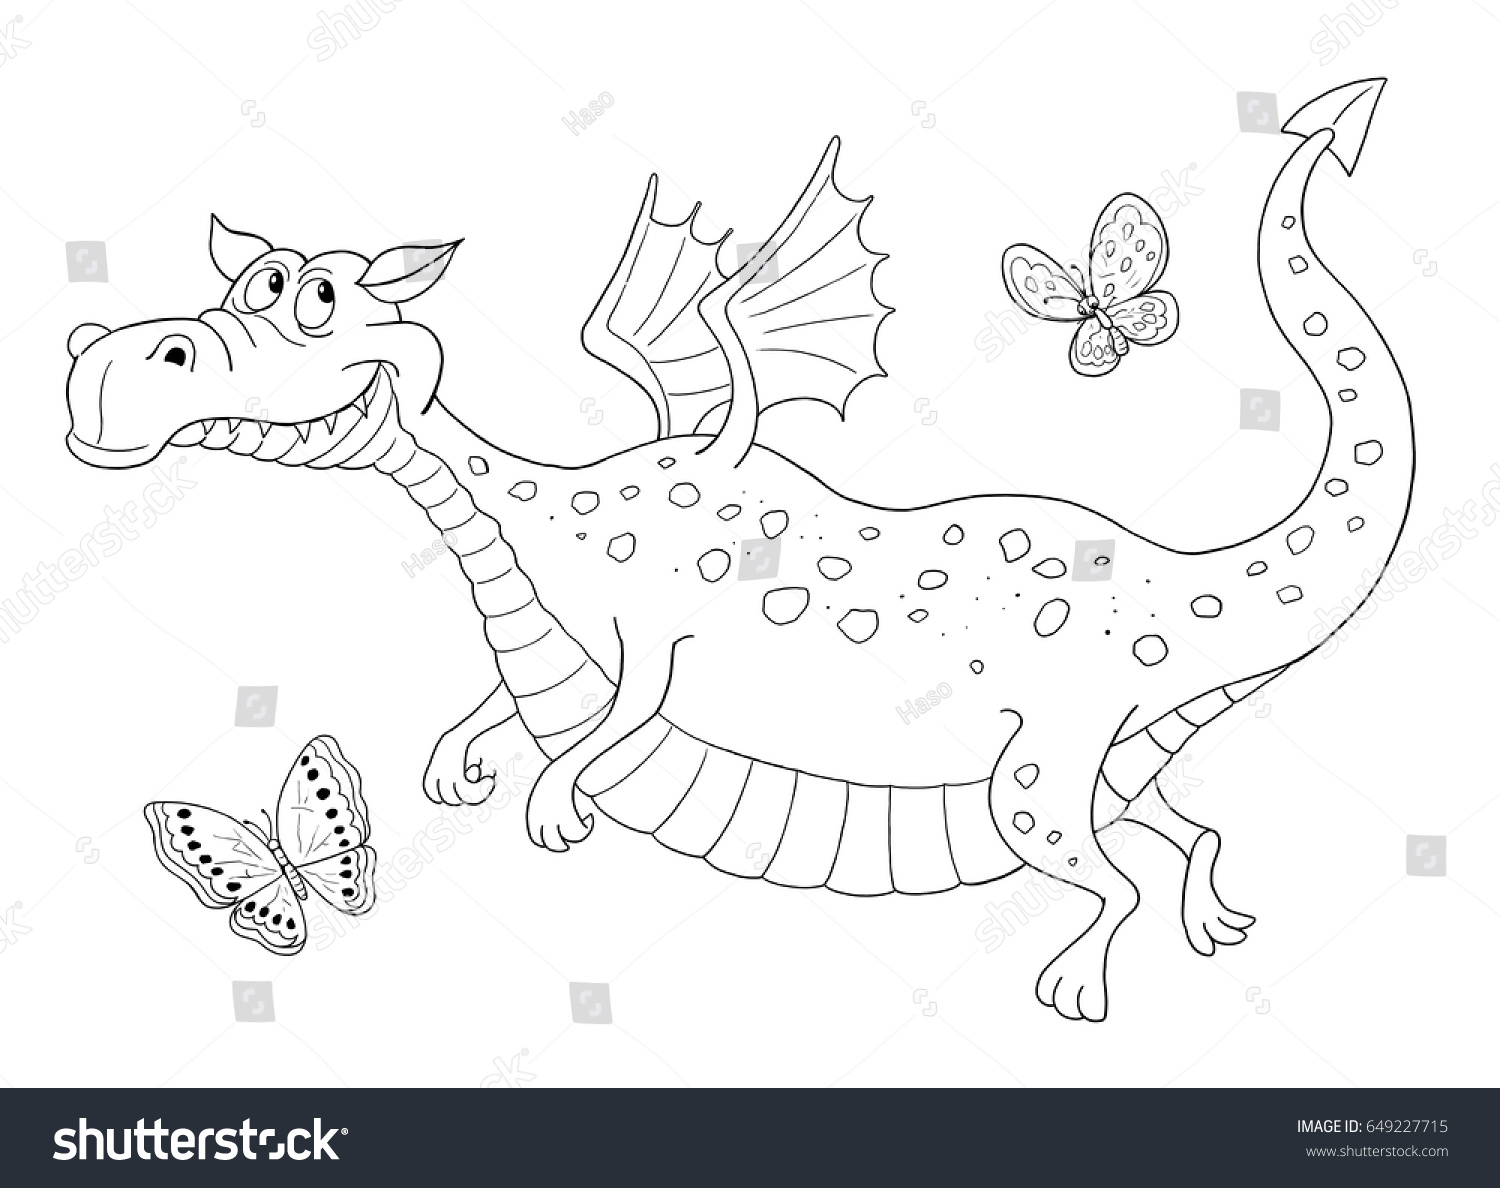 Royalty Free Stock Illustration of Cute Dragon Flying Butterflies ...